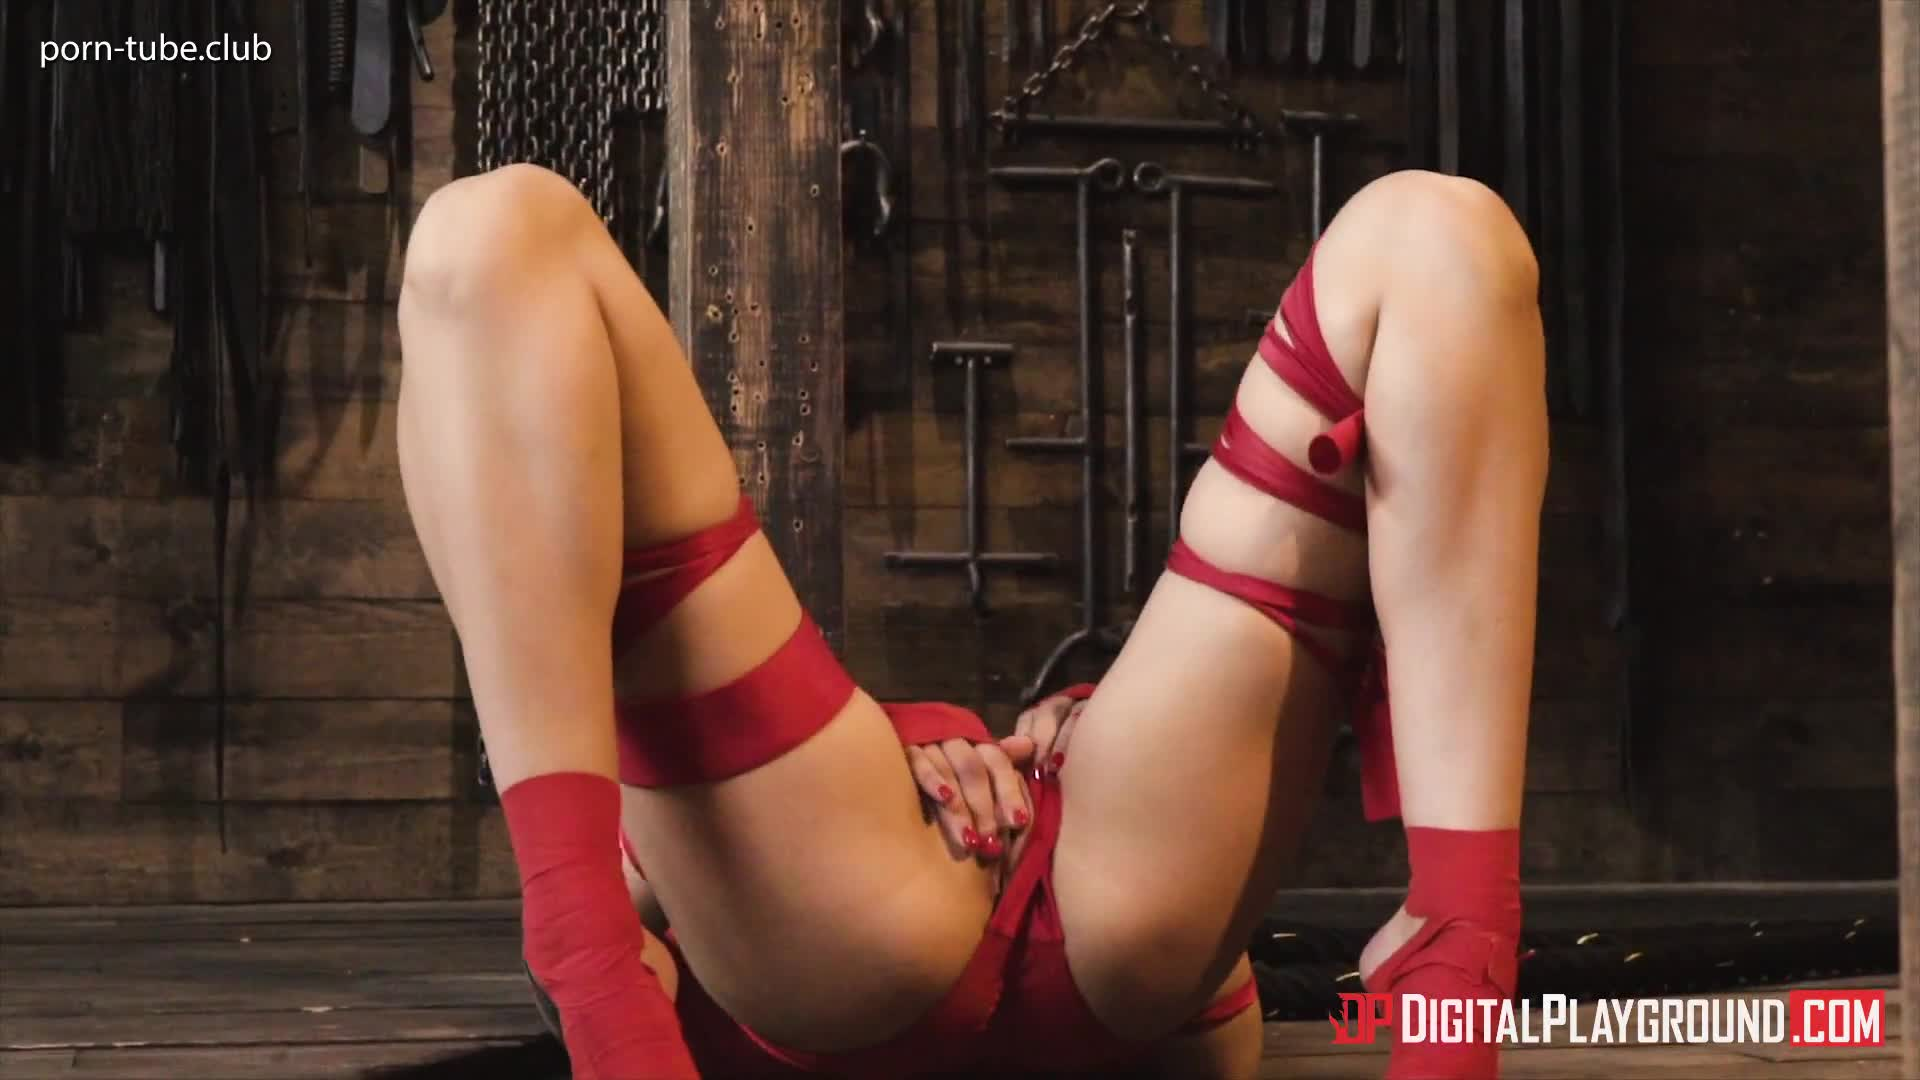 DigitalPlayground 17.11.03 Ariana Marie The Offenders A DP